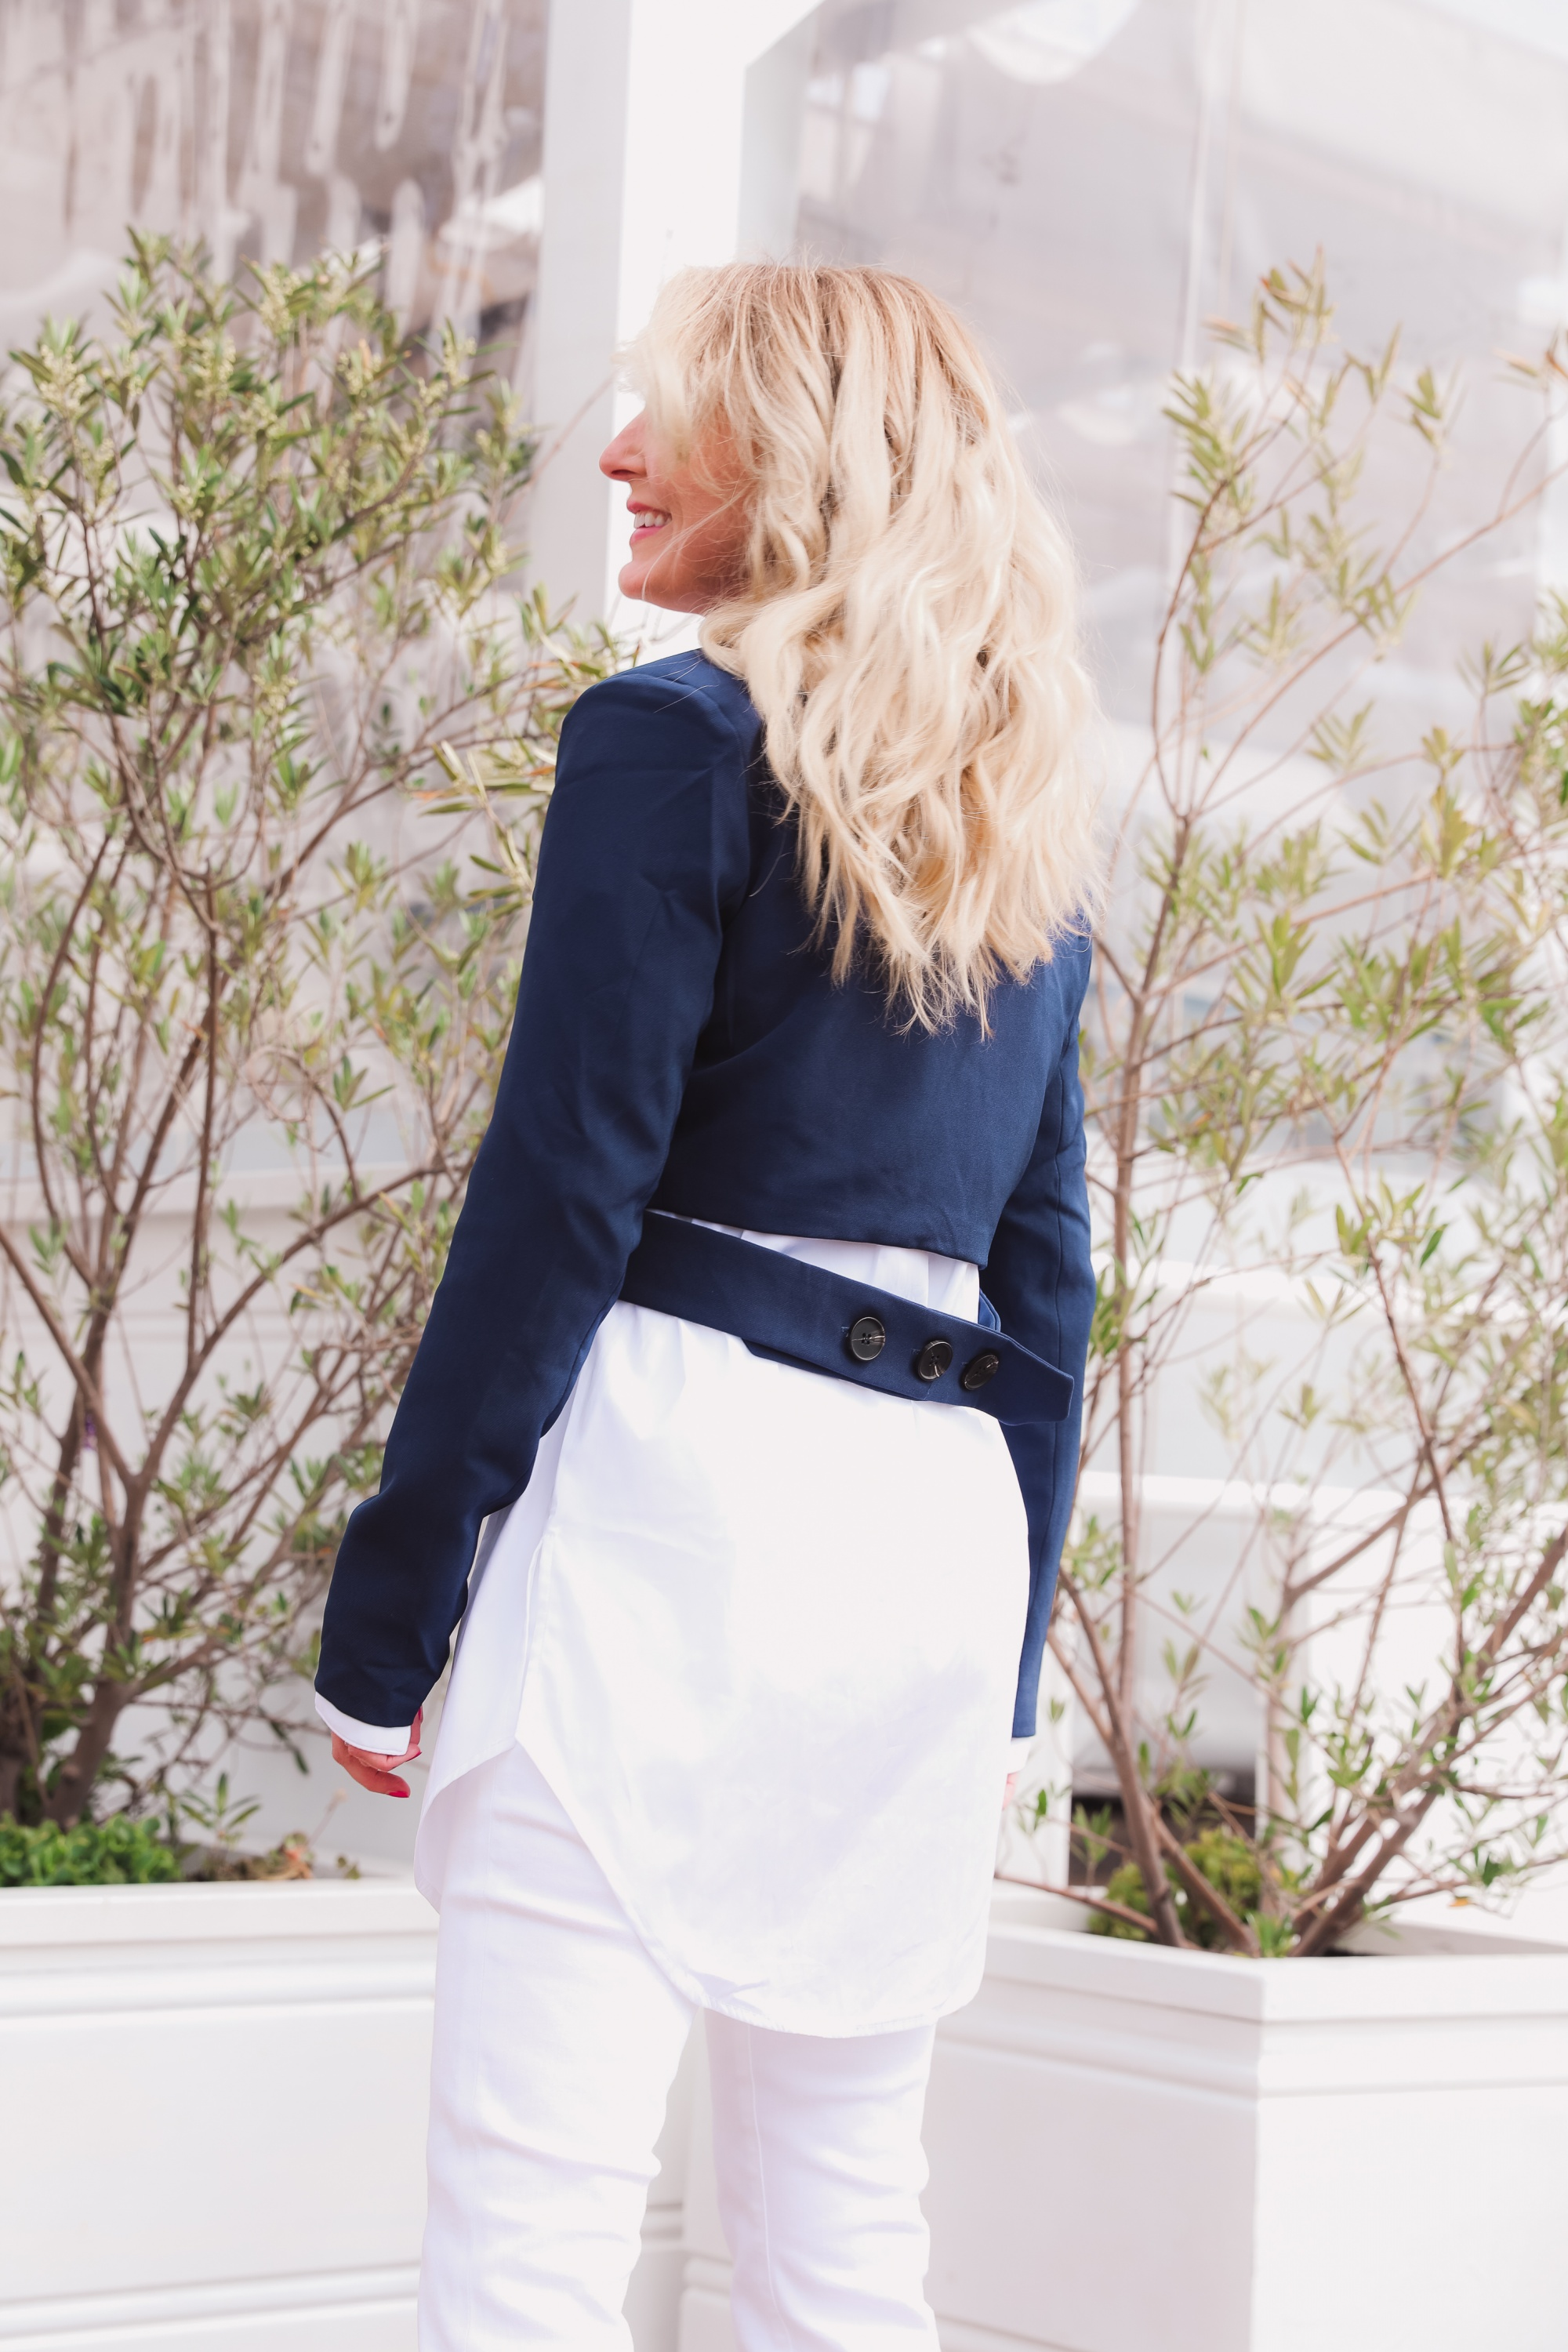 how to wear a cropped blazer, how to wear a cropped blazer over 40, how to wear cropped blazer, wear cropped blazer, navy cropped blazer, 4th & reckless cropped blazer, white open edit oversized button down, see by chloe wedges, white frame flare jeans, erin busbee